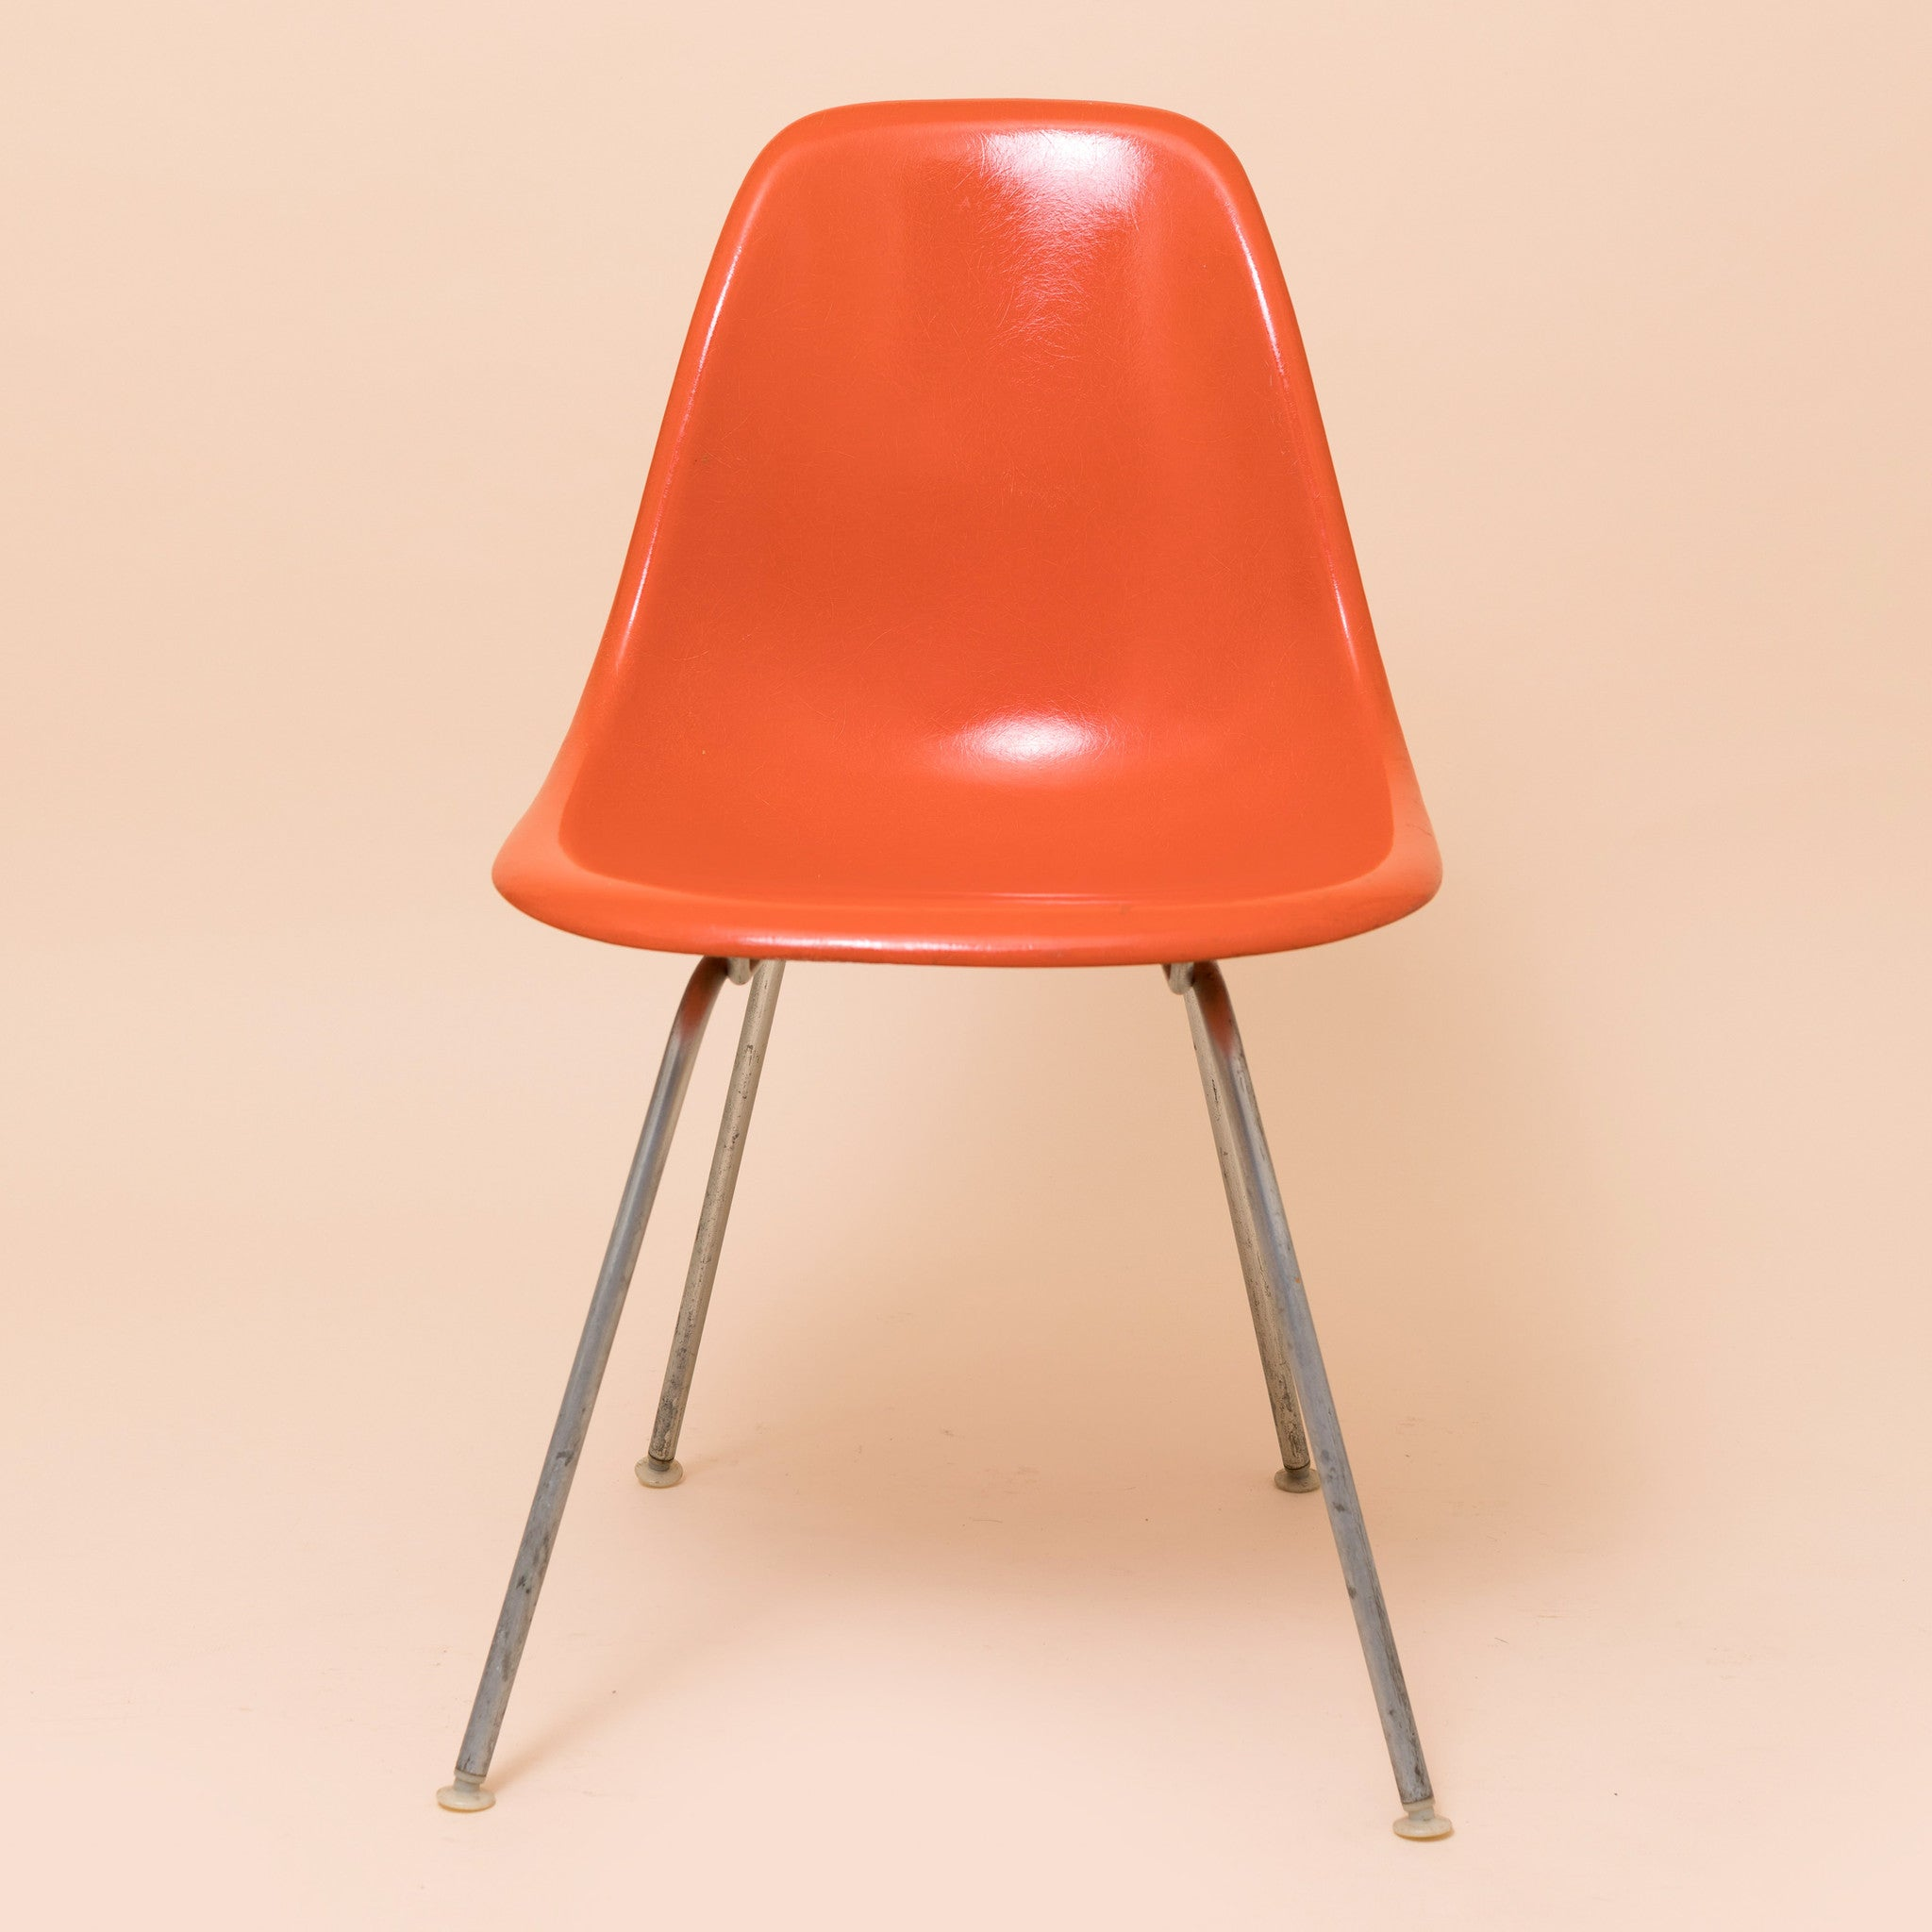 Incroyable ... Red Orange Herman Miller DSX Eames Chair ...